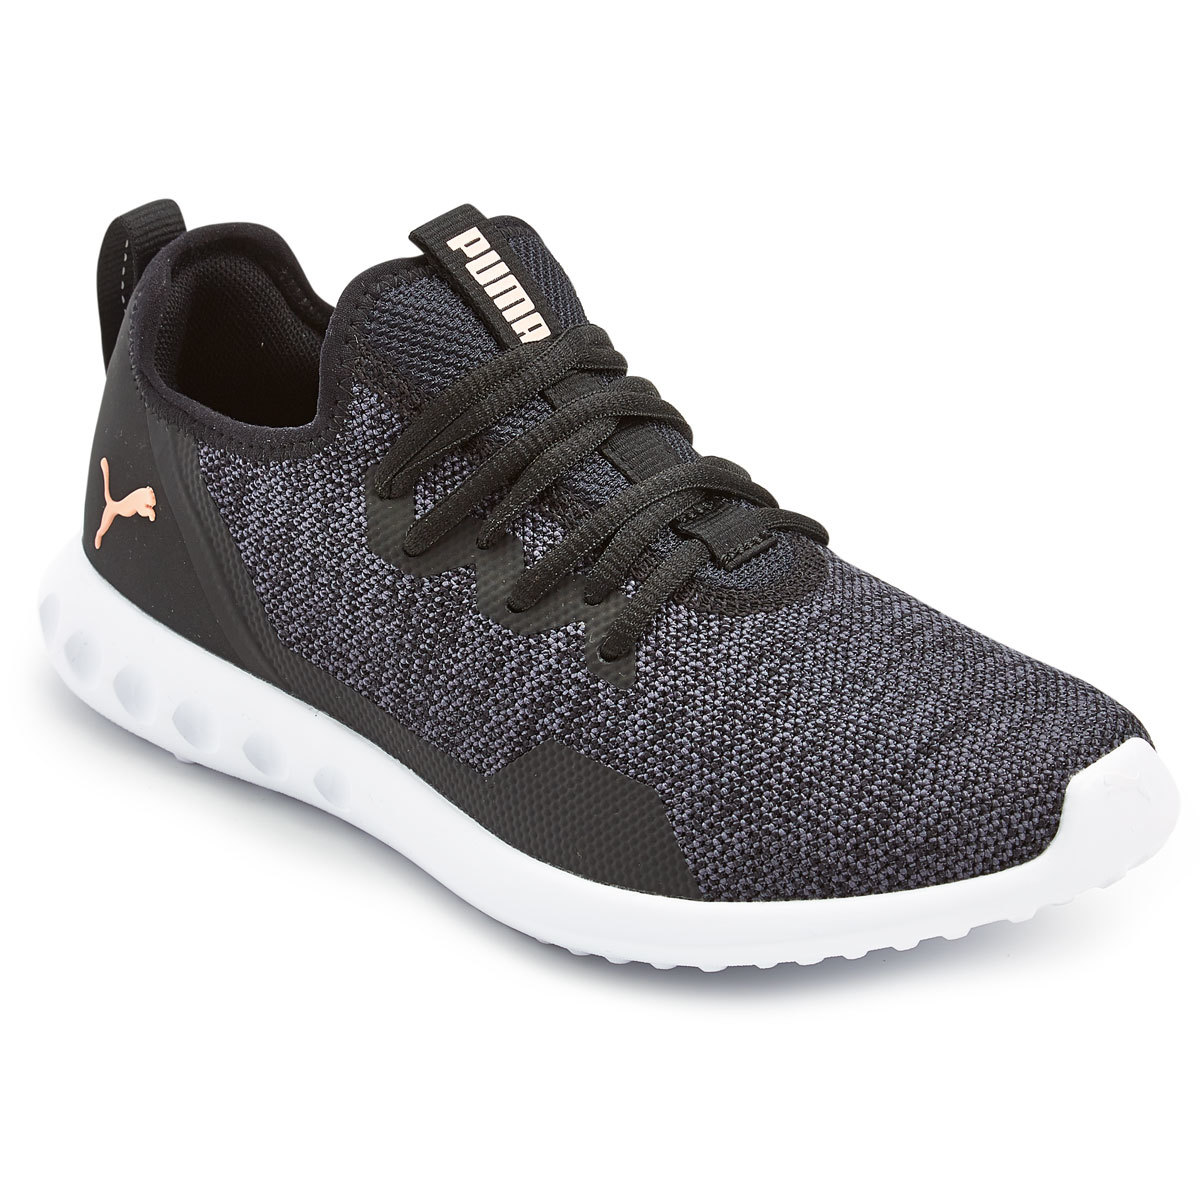 Carson 2 Knit Running Shoes